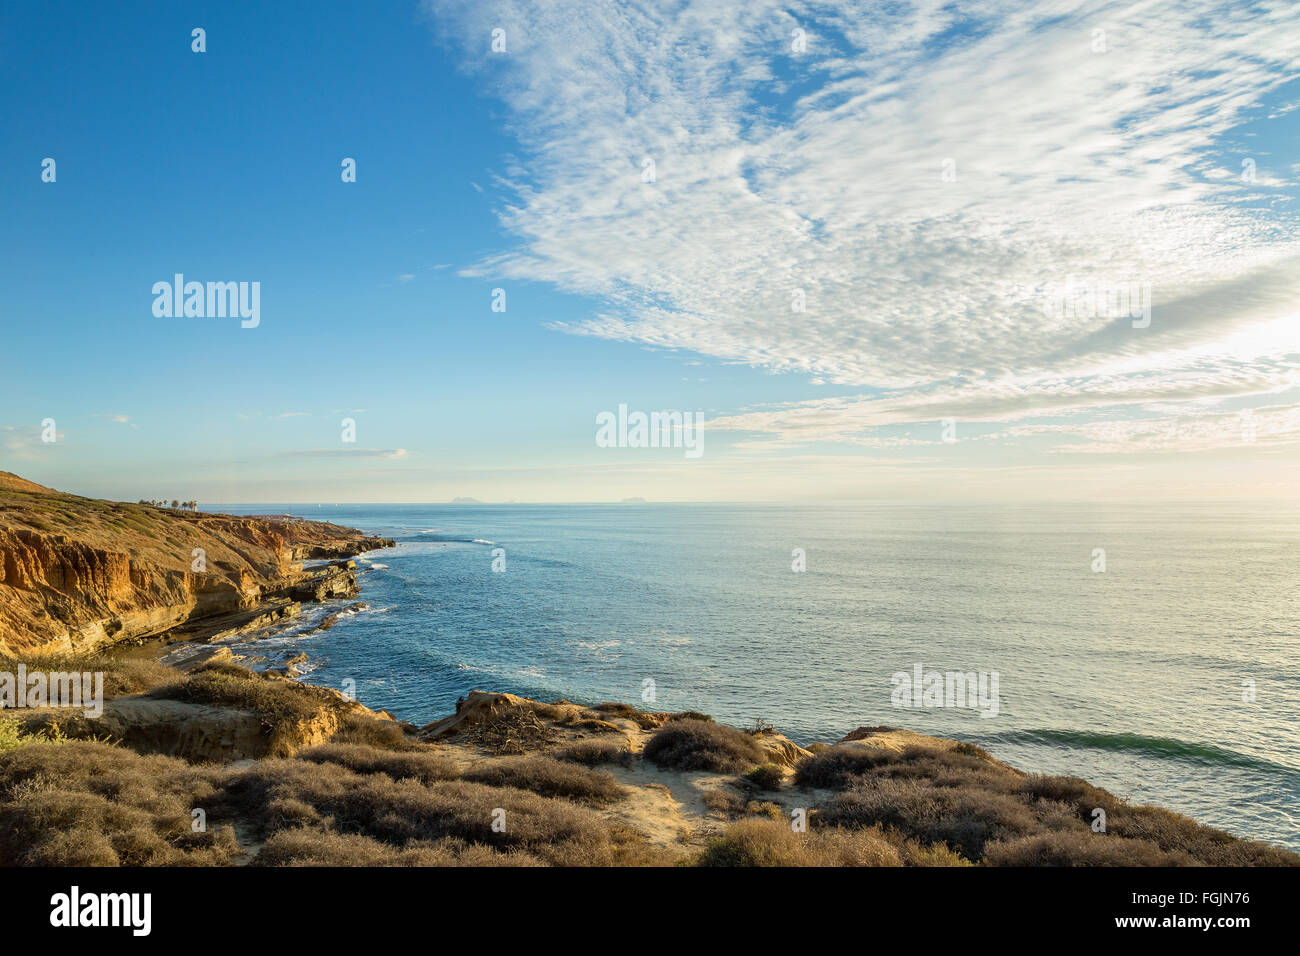 Scenic view at Cabrillo National Monument park, San Diego, California - Stock Image